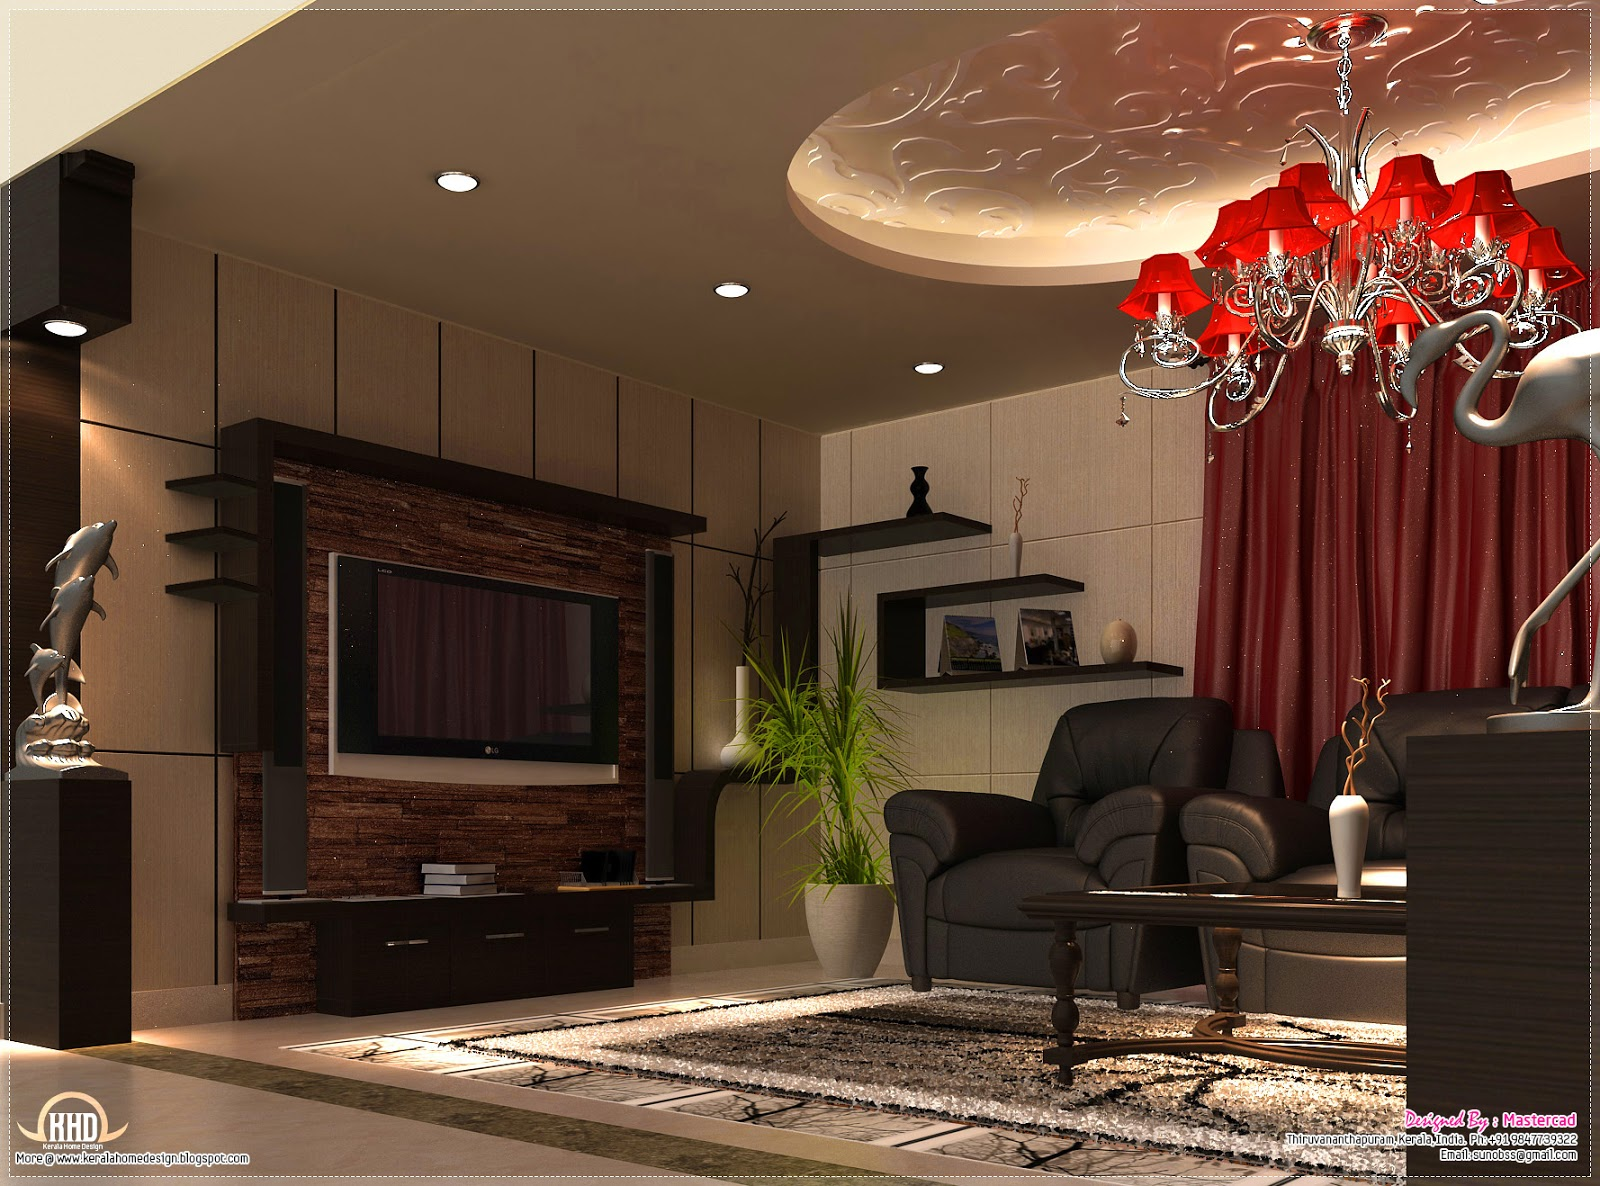 Interior design ideas kerala home design and floor plans for Interior decoration design ideas